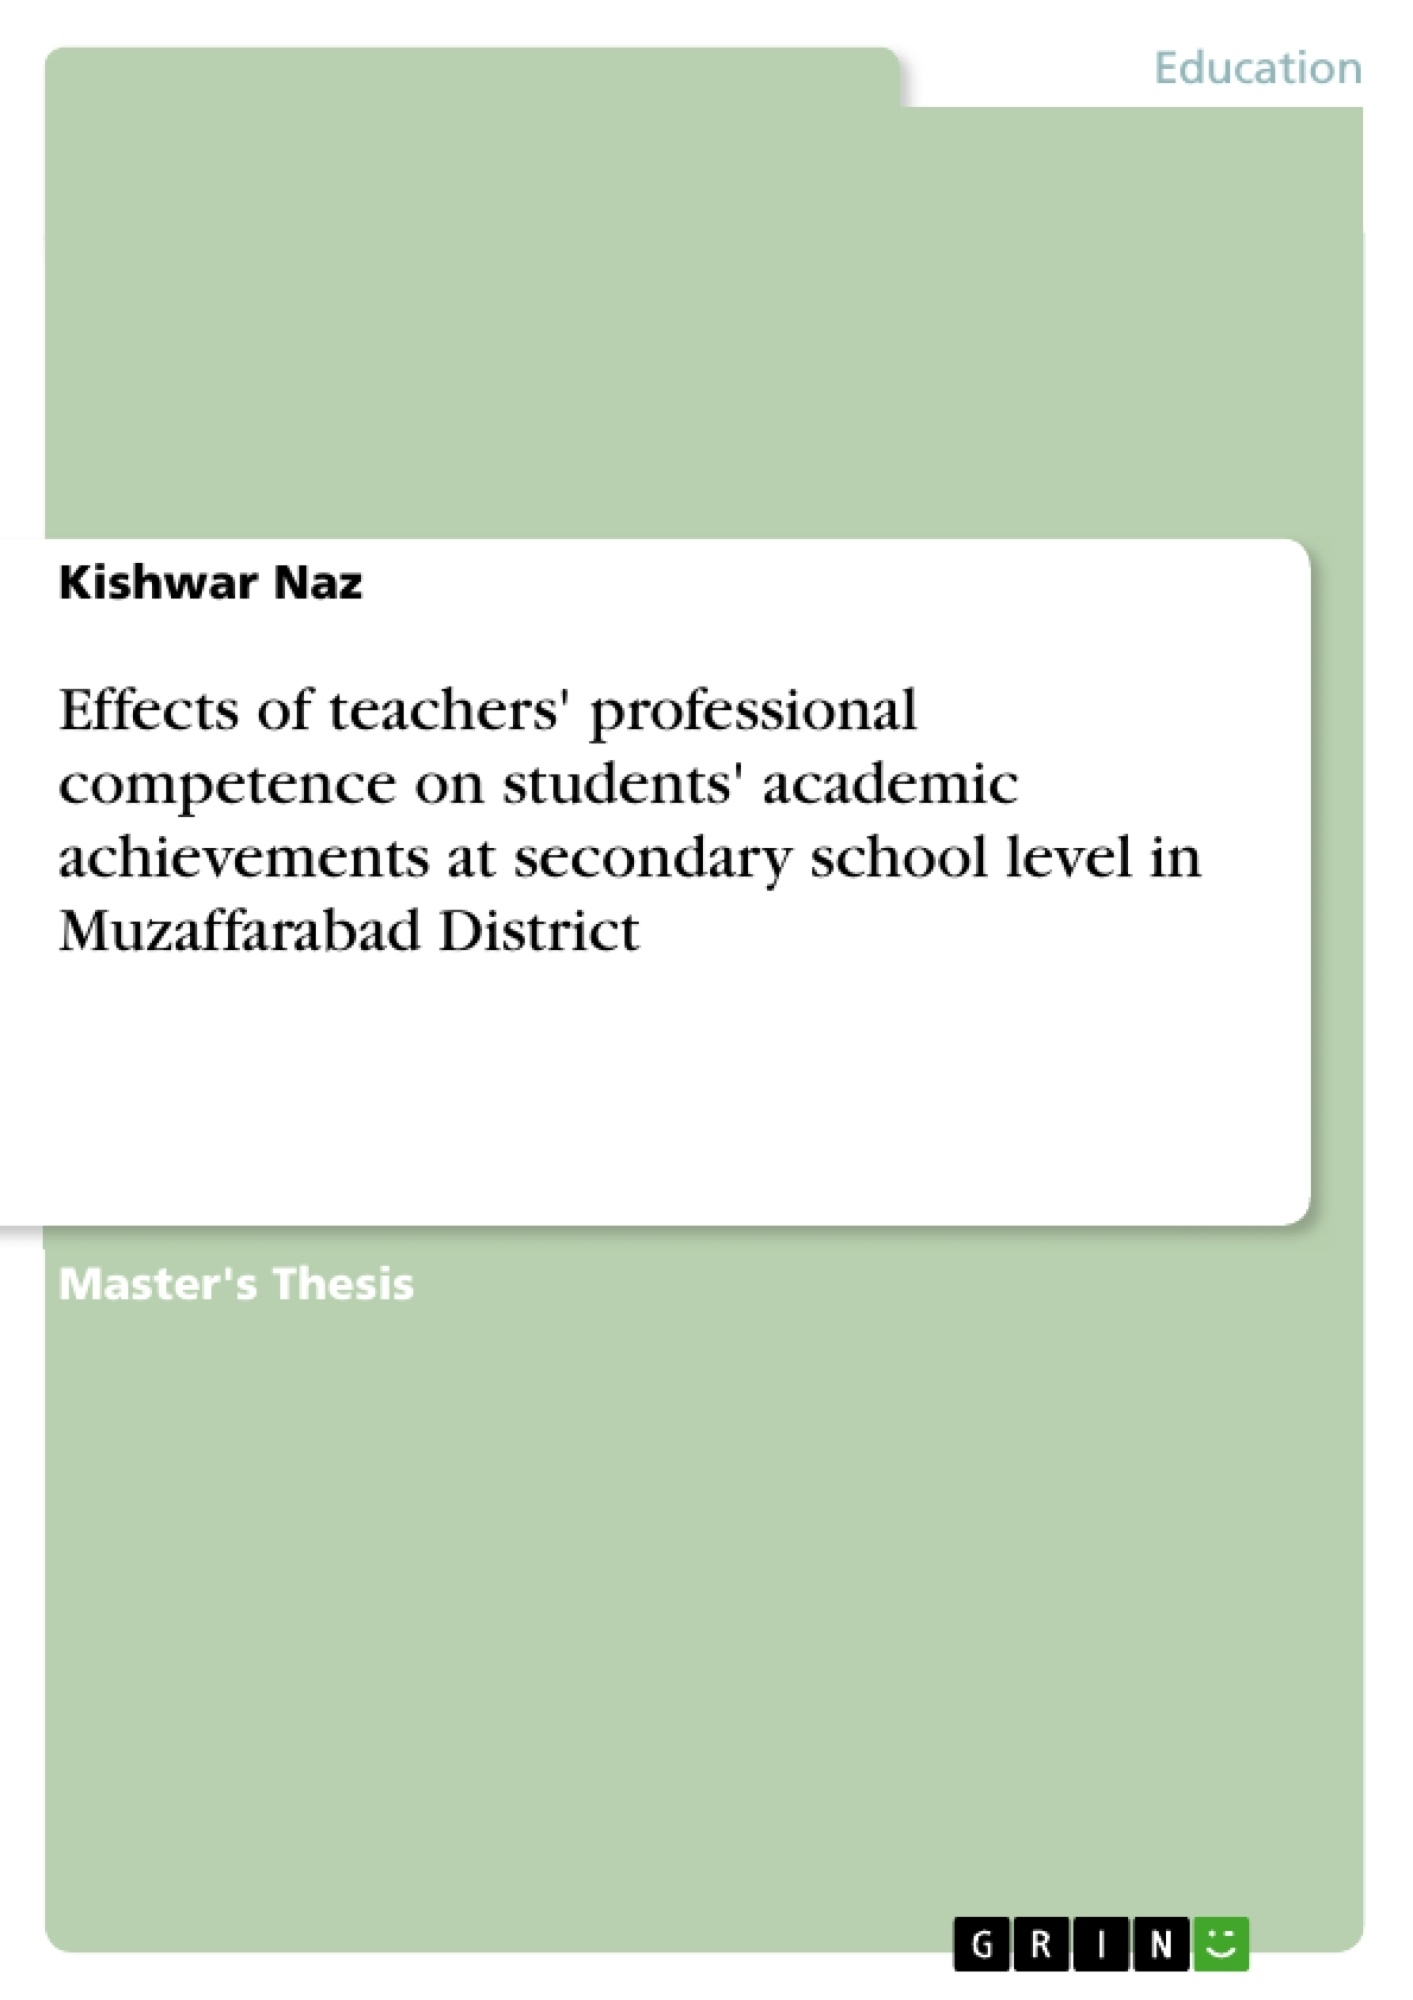 Title: Effects of teachers' professional competence on students' academic achievements at secondary school level in Muzaffarabad District